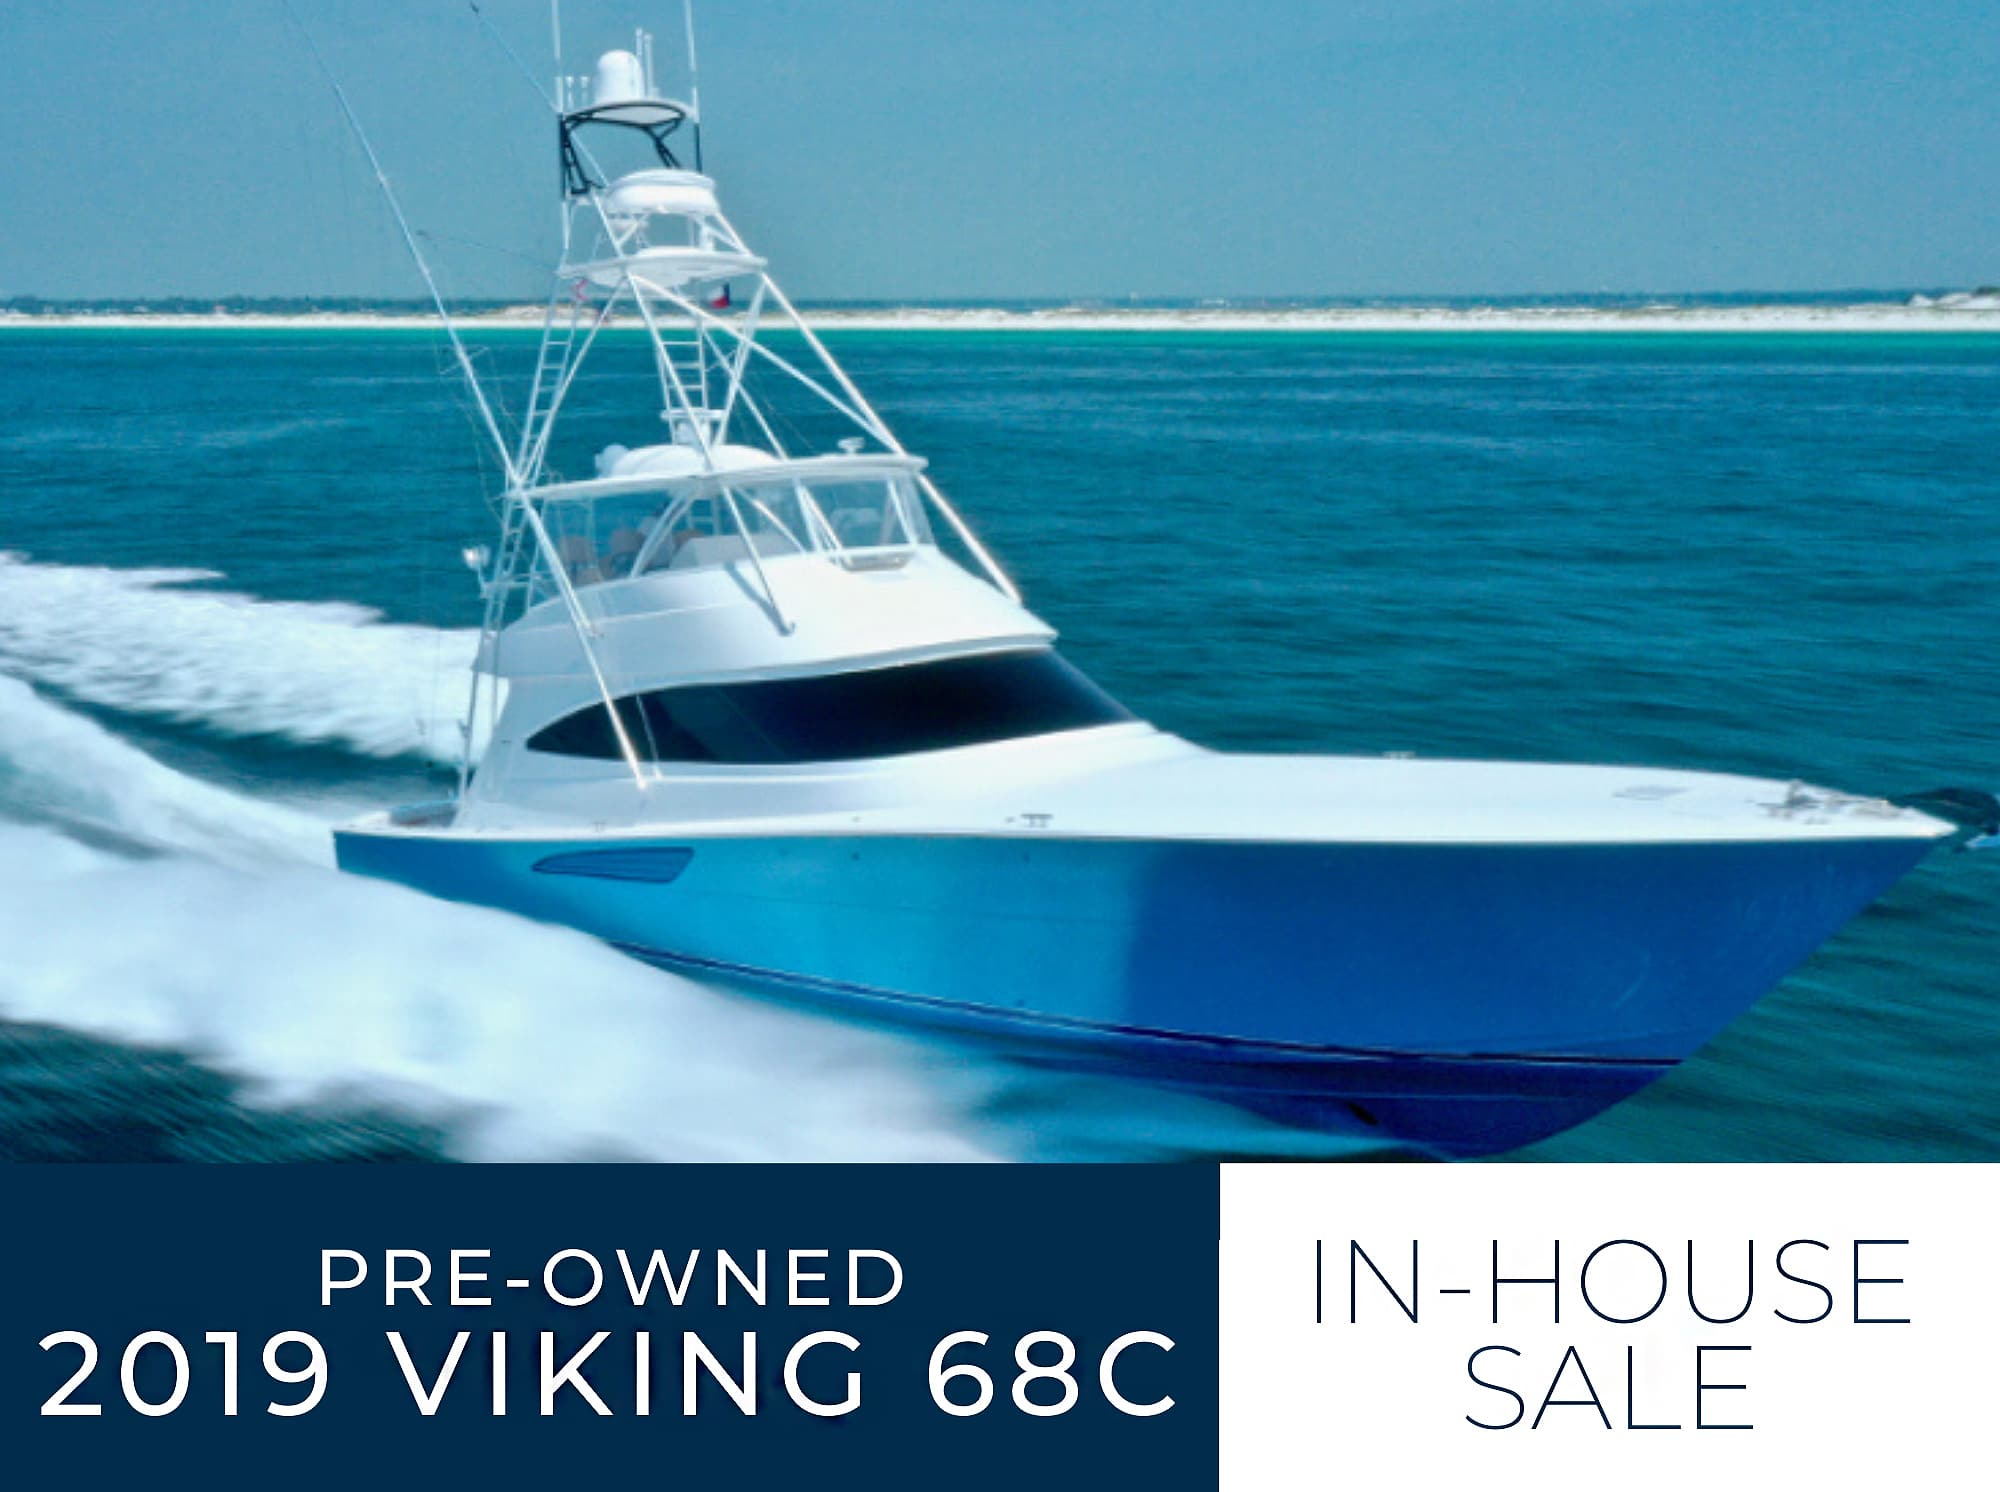 2019 68 Viking Yacht Convertible Sold